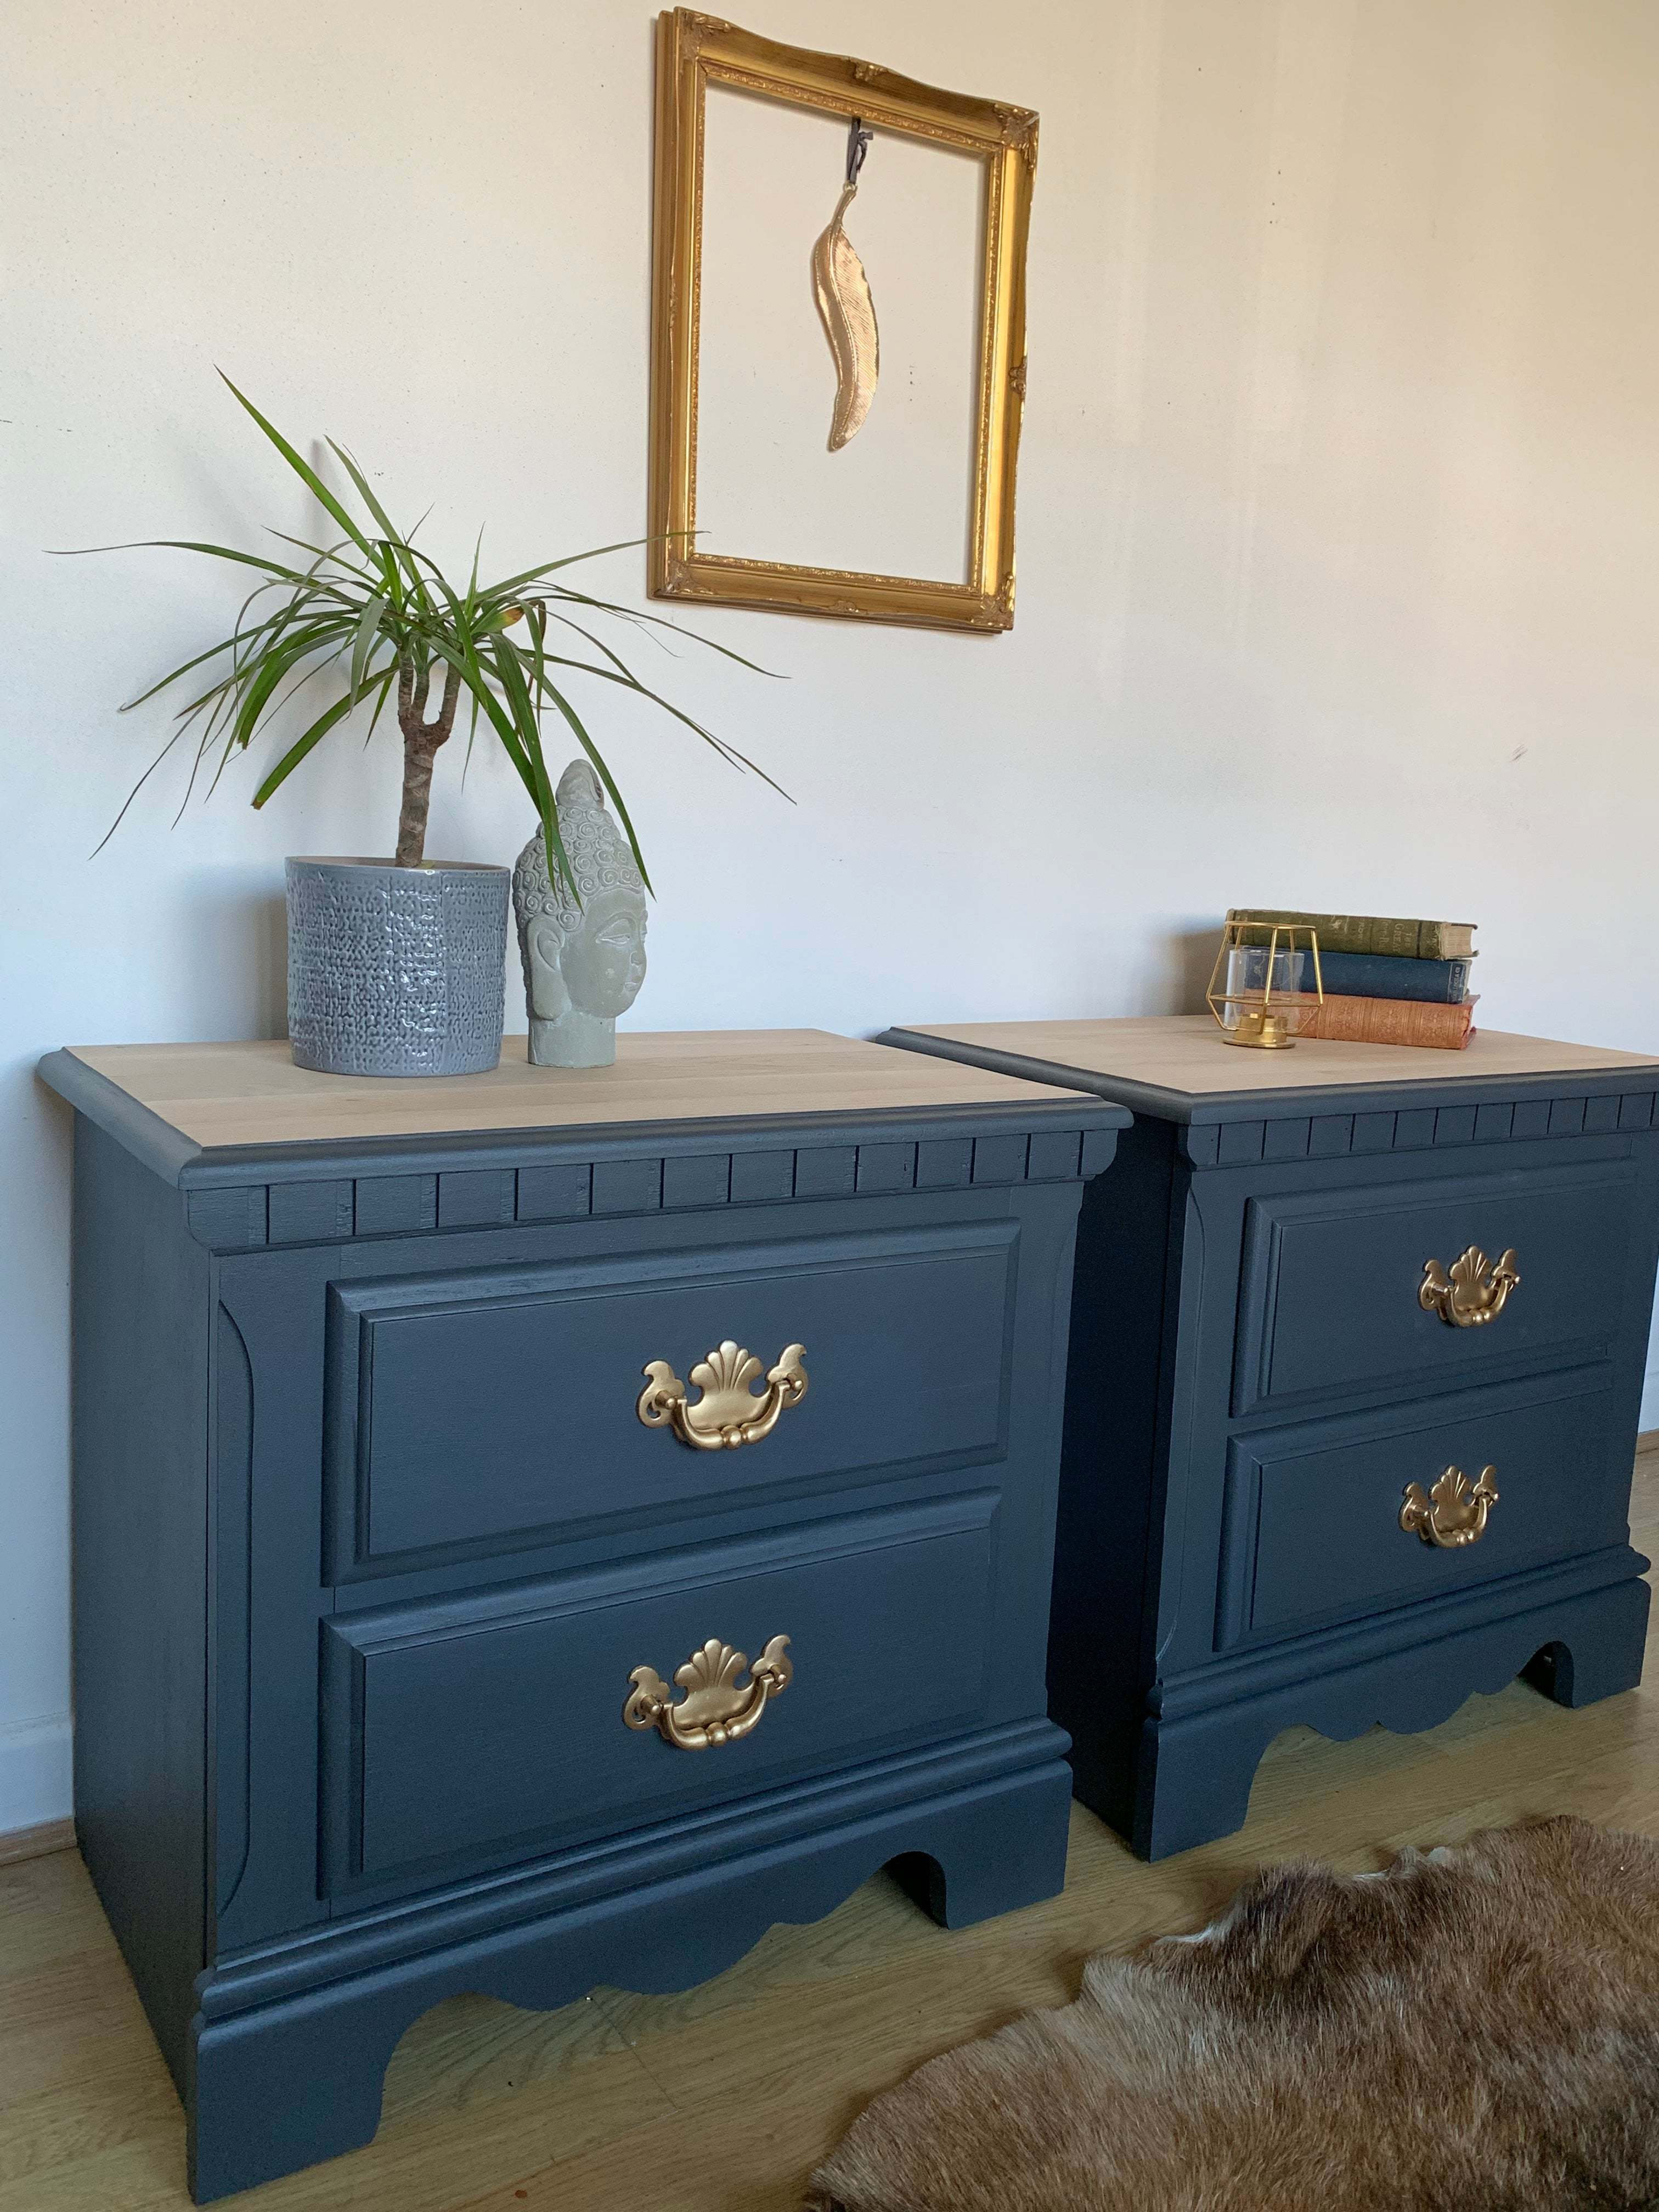 Grey Bedside Tables: A Pair Of Dark Grey Bedside Tables